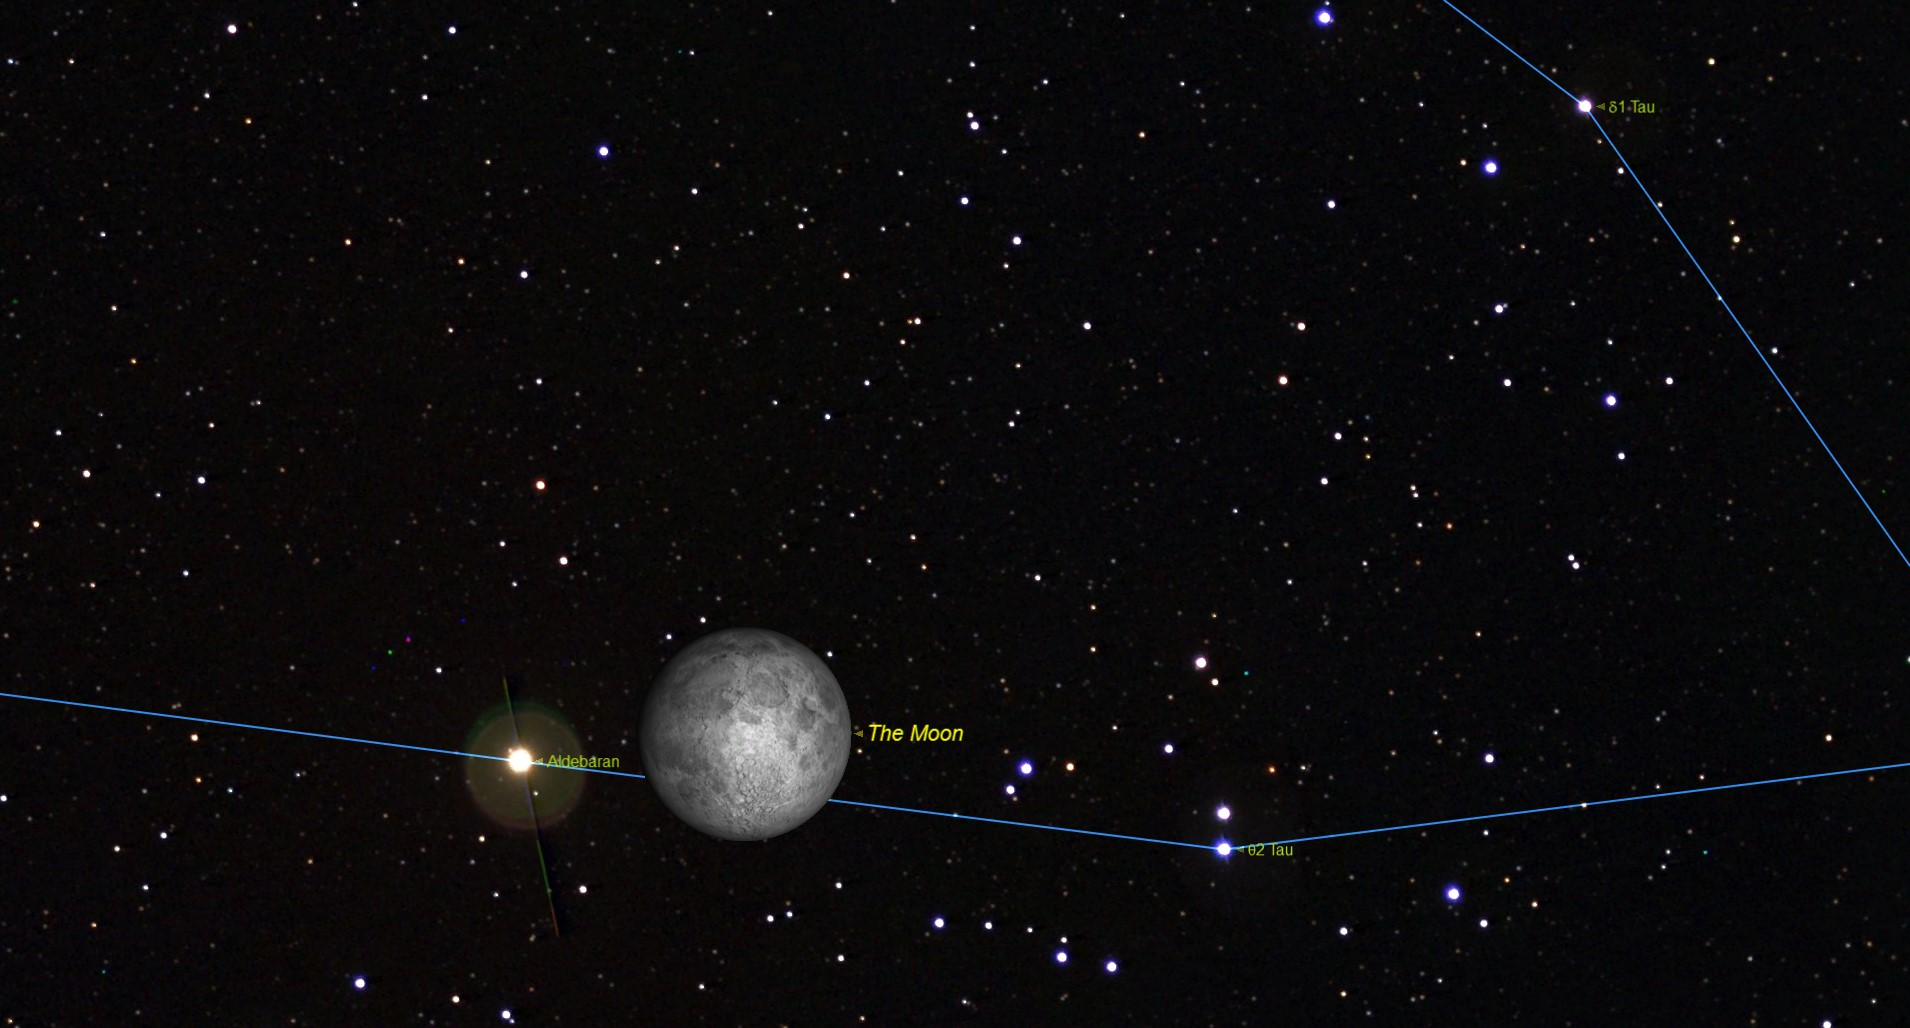 Dec. 30 - Occultation of Aldebaran